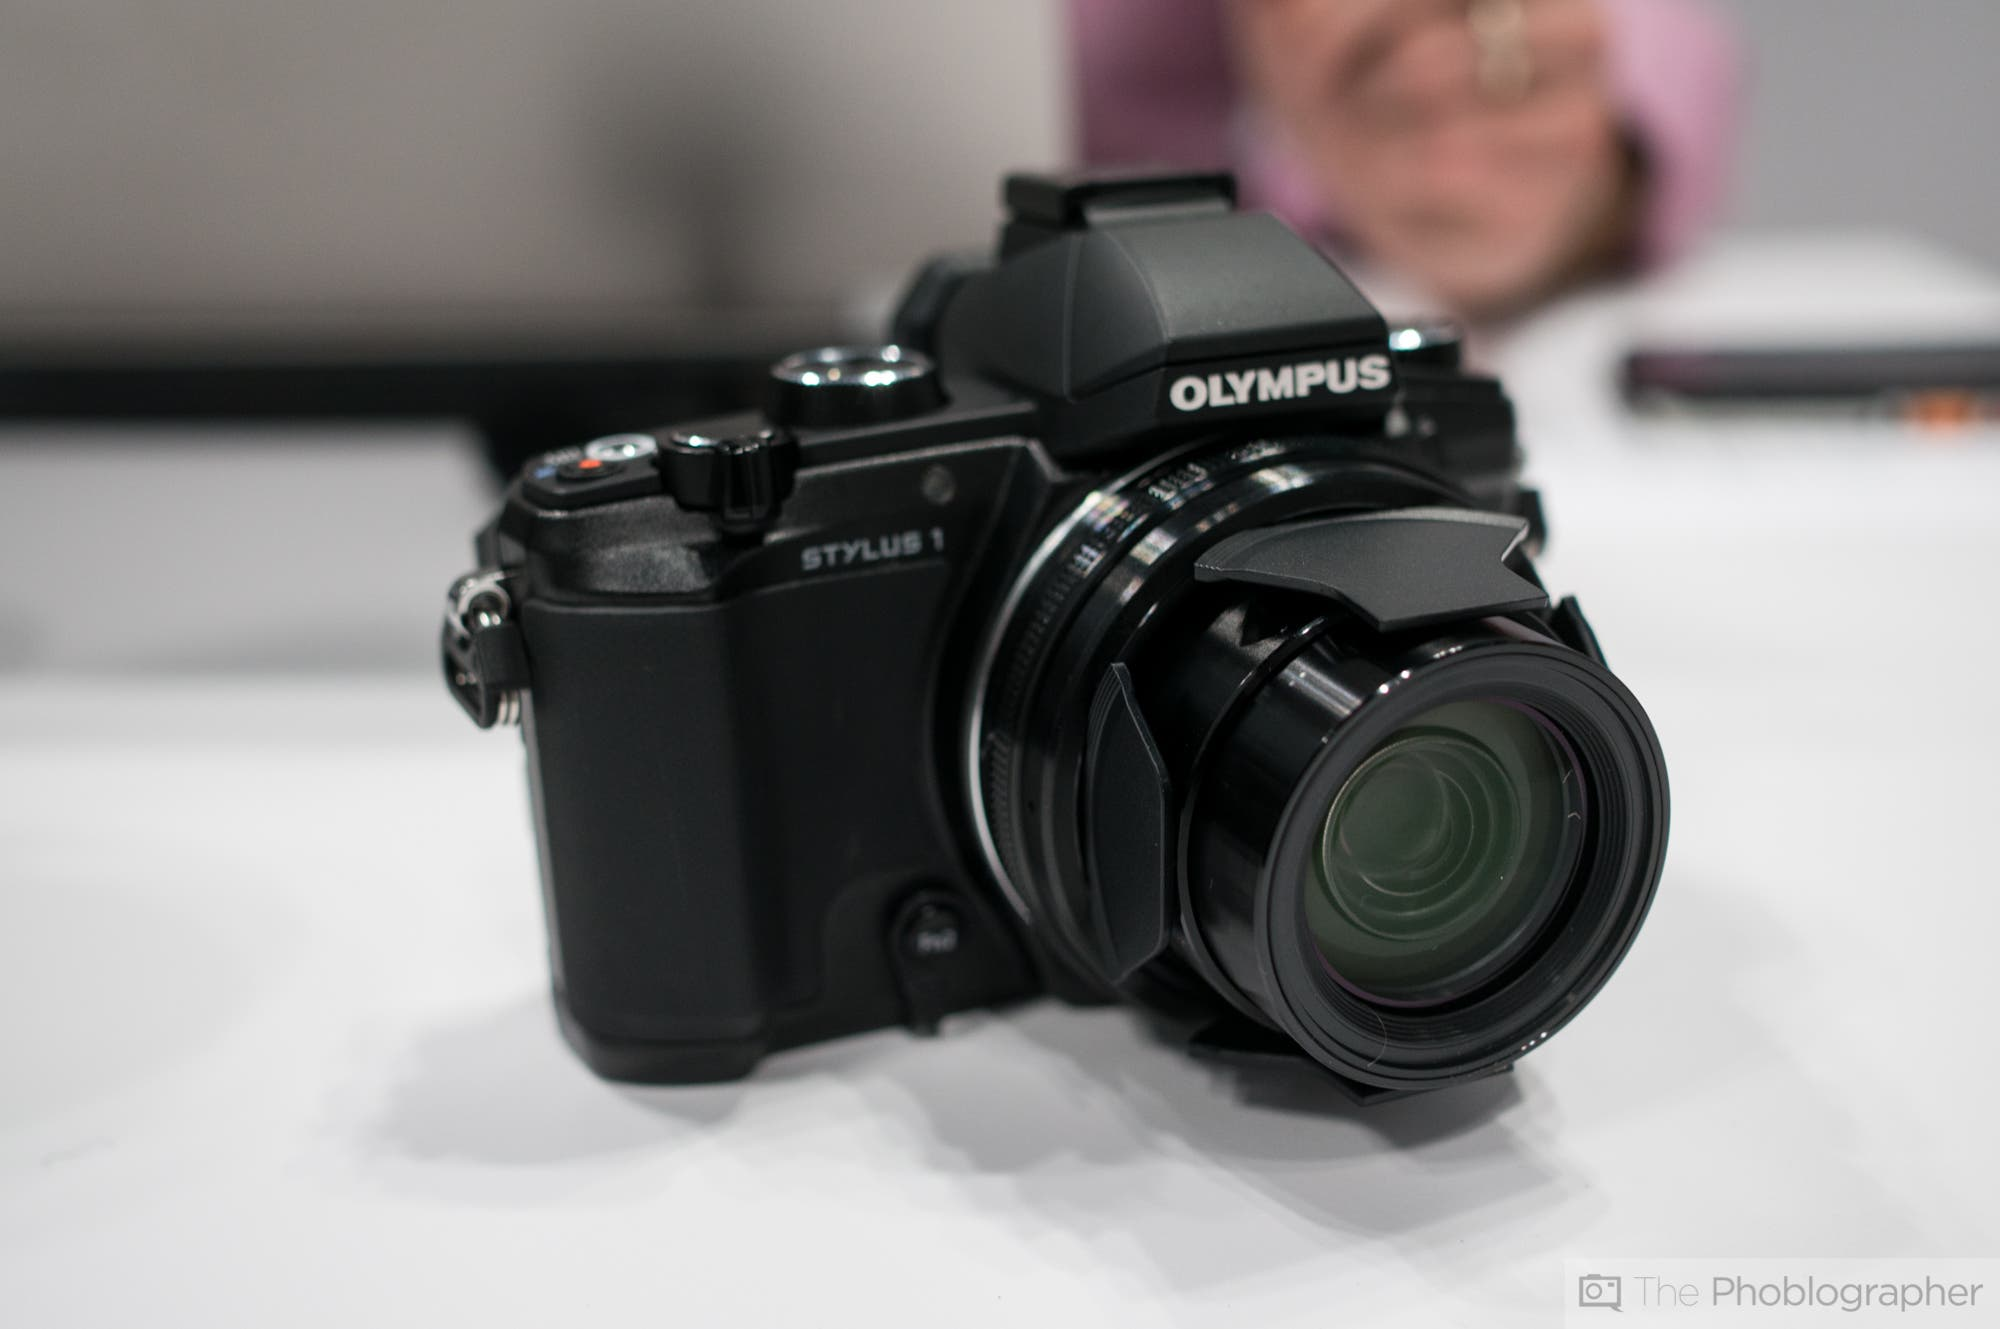 Olympus Stylus 1 - Compact cameras - Photopoint